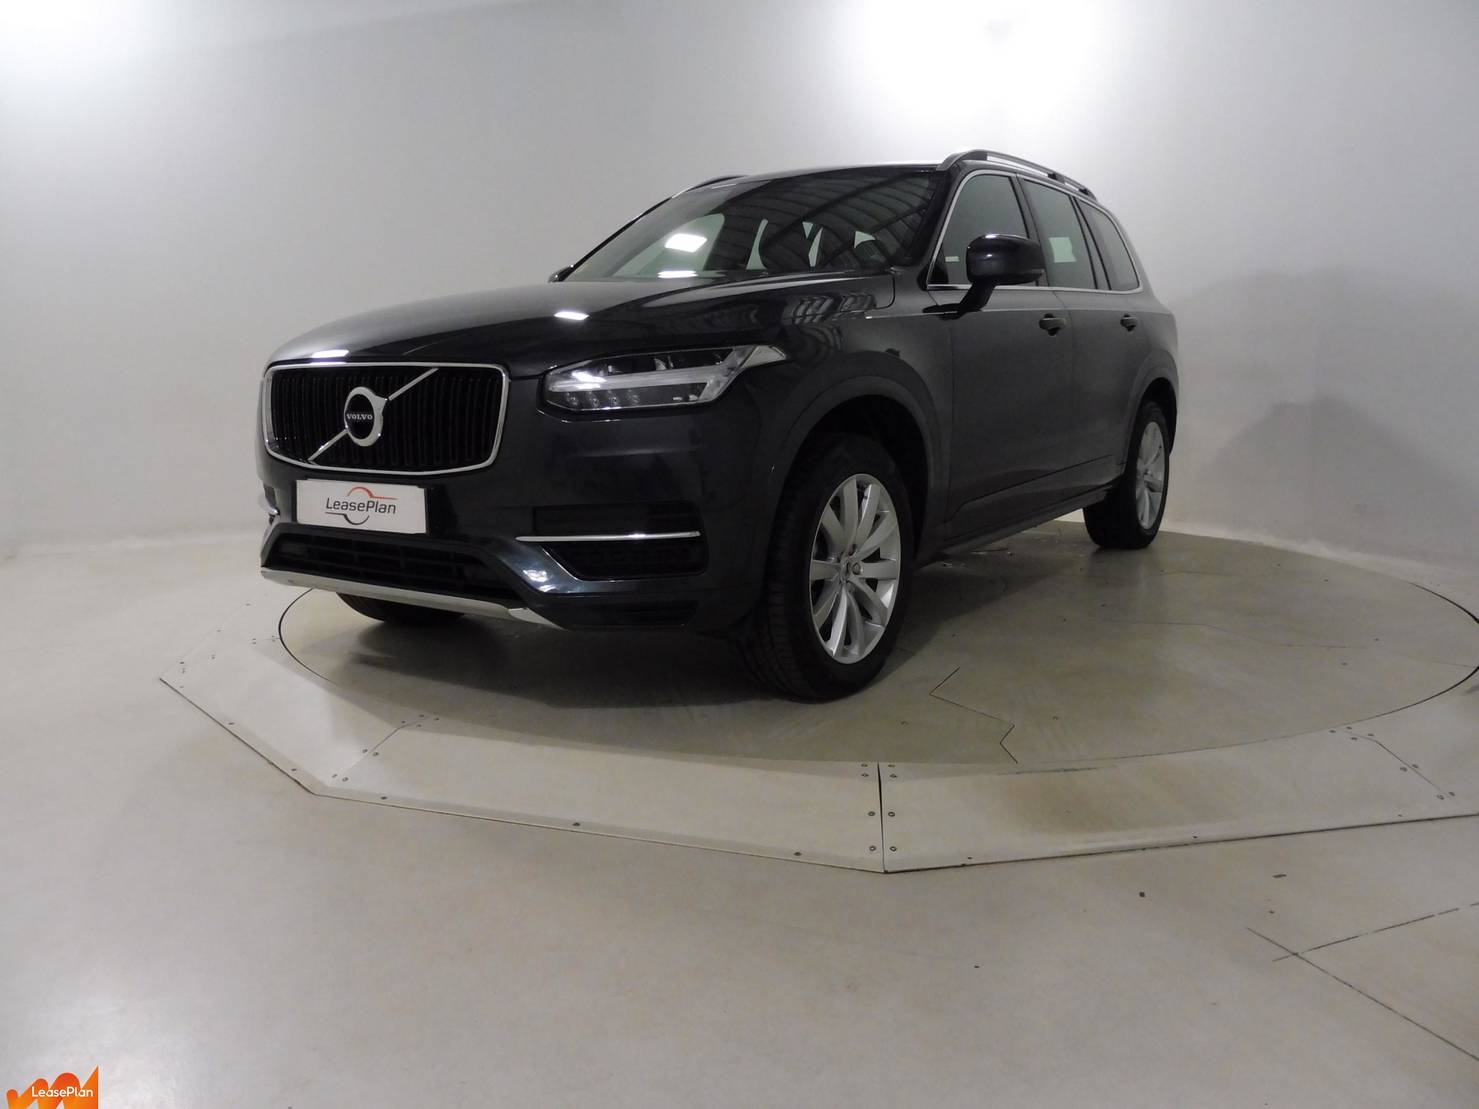 Volvo XC90 D4 190 ch Geartronic 7pl, Momentum detail1